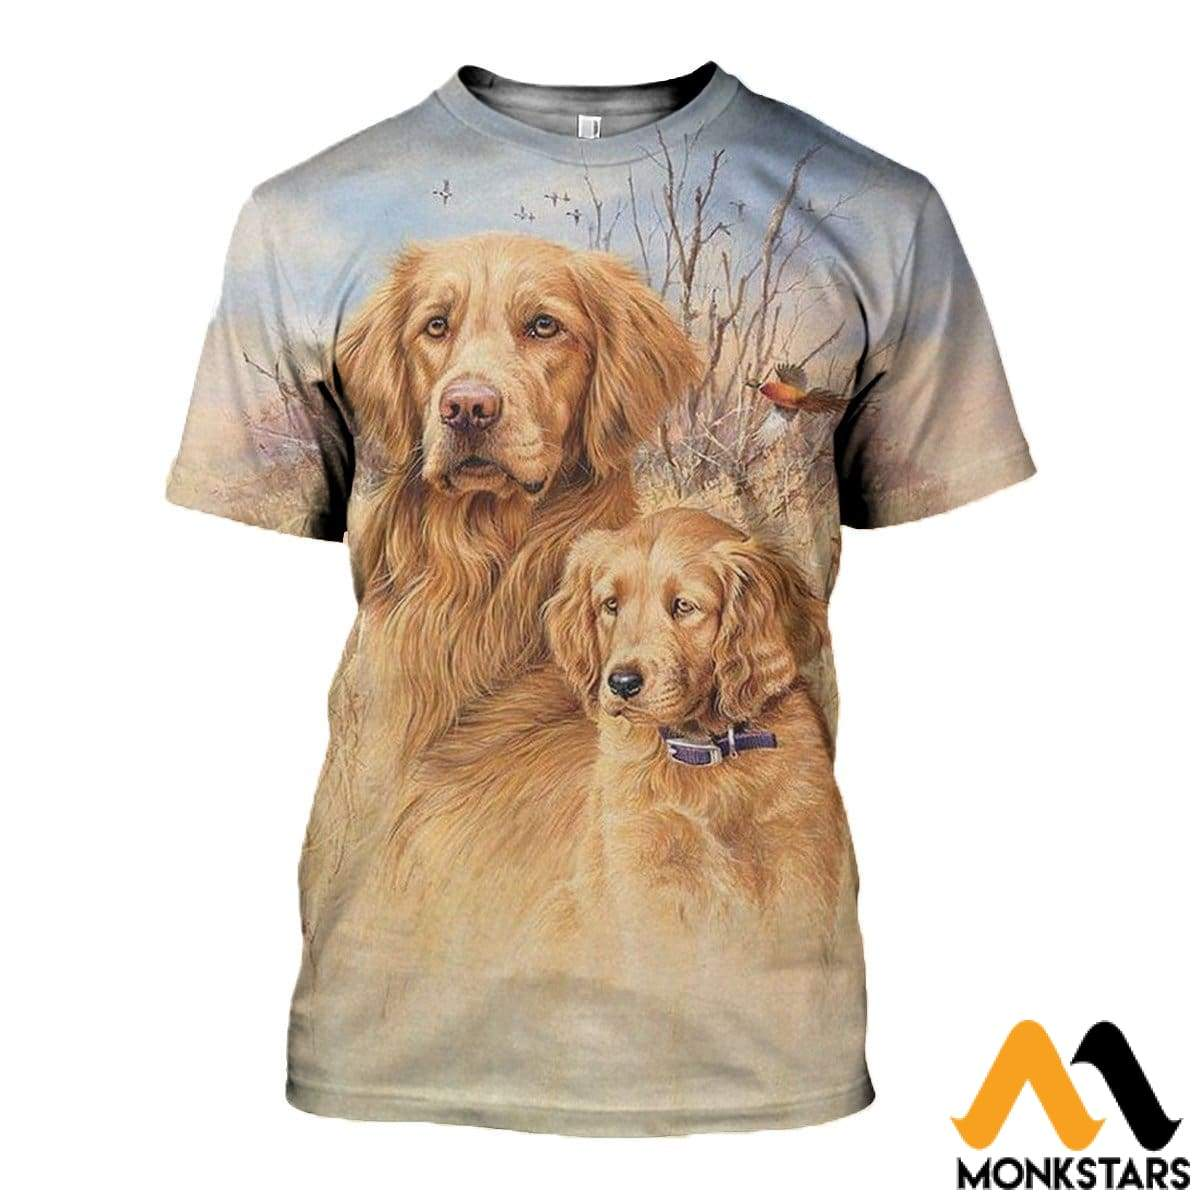 3D All Over Printed Dog Hunting Art Shirts And Shorts T-Shirt / Xs Clothes